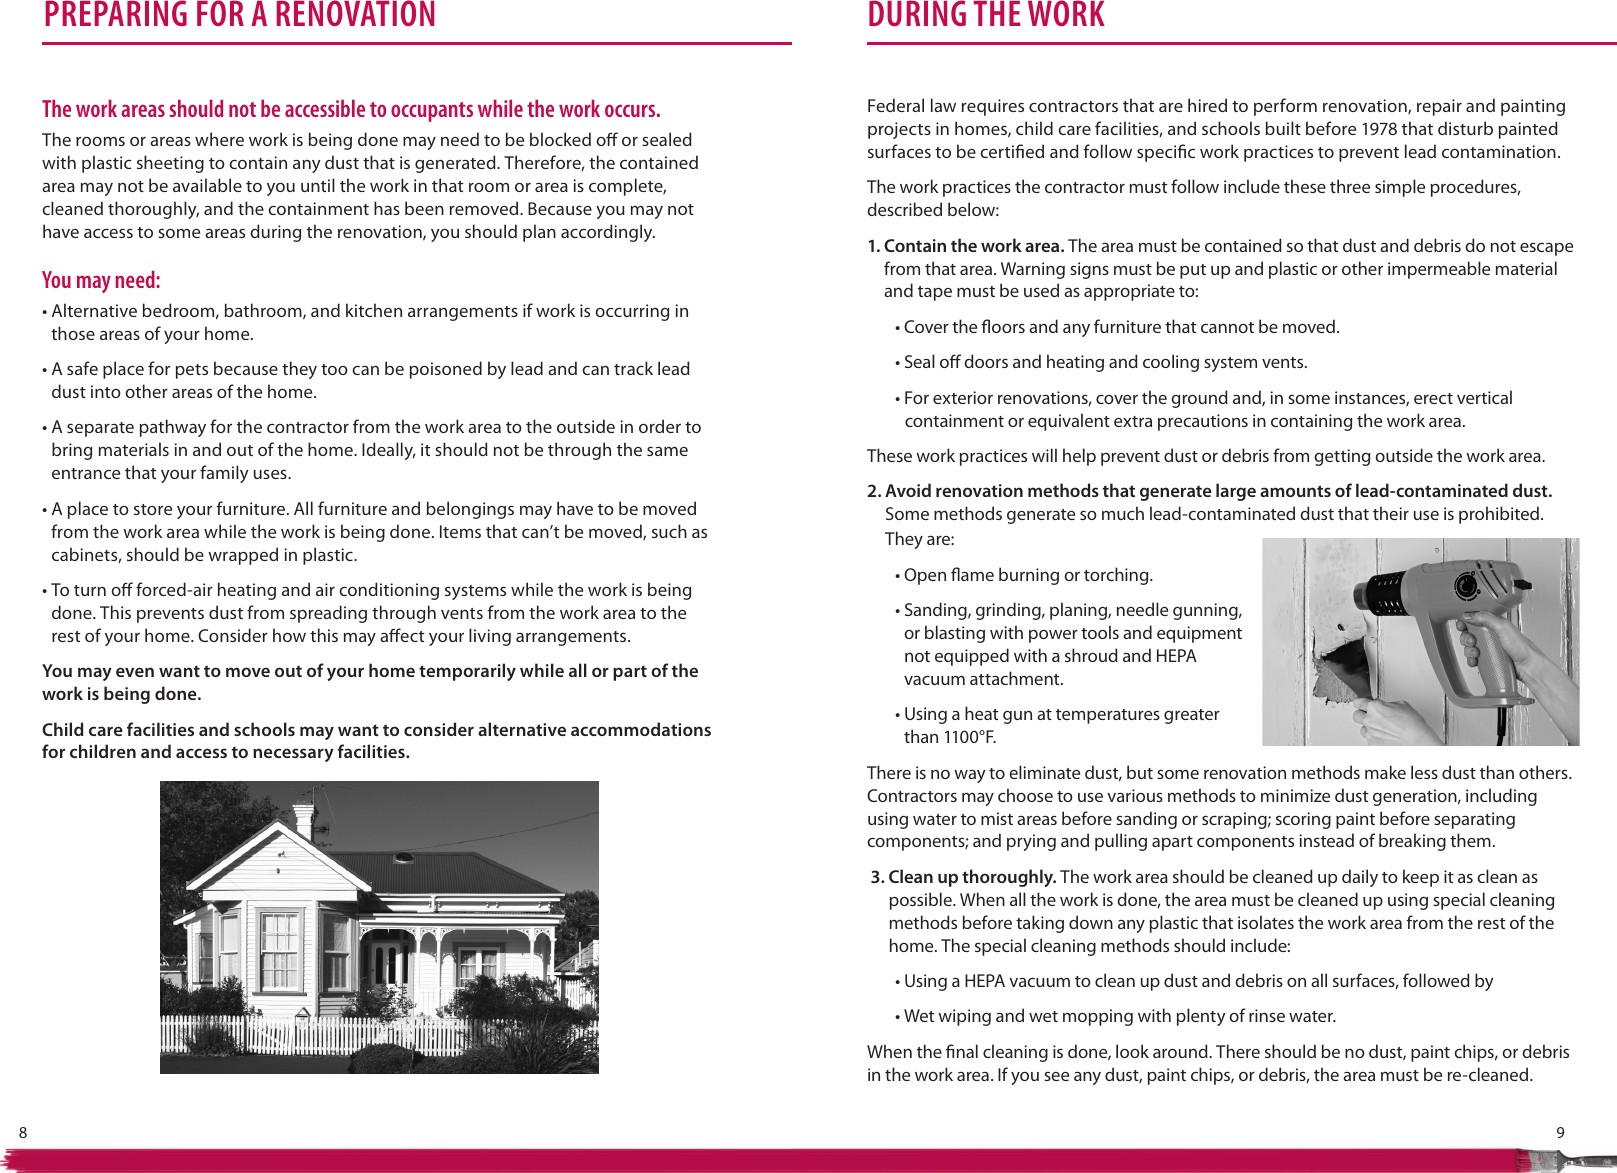 Page 7 of 12 - The Lead-Safe Certified Guide To Renovate Right